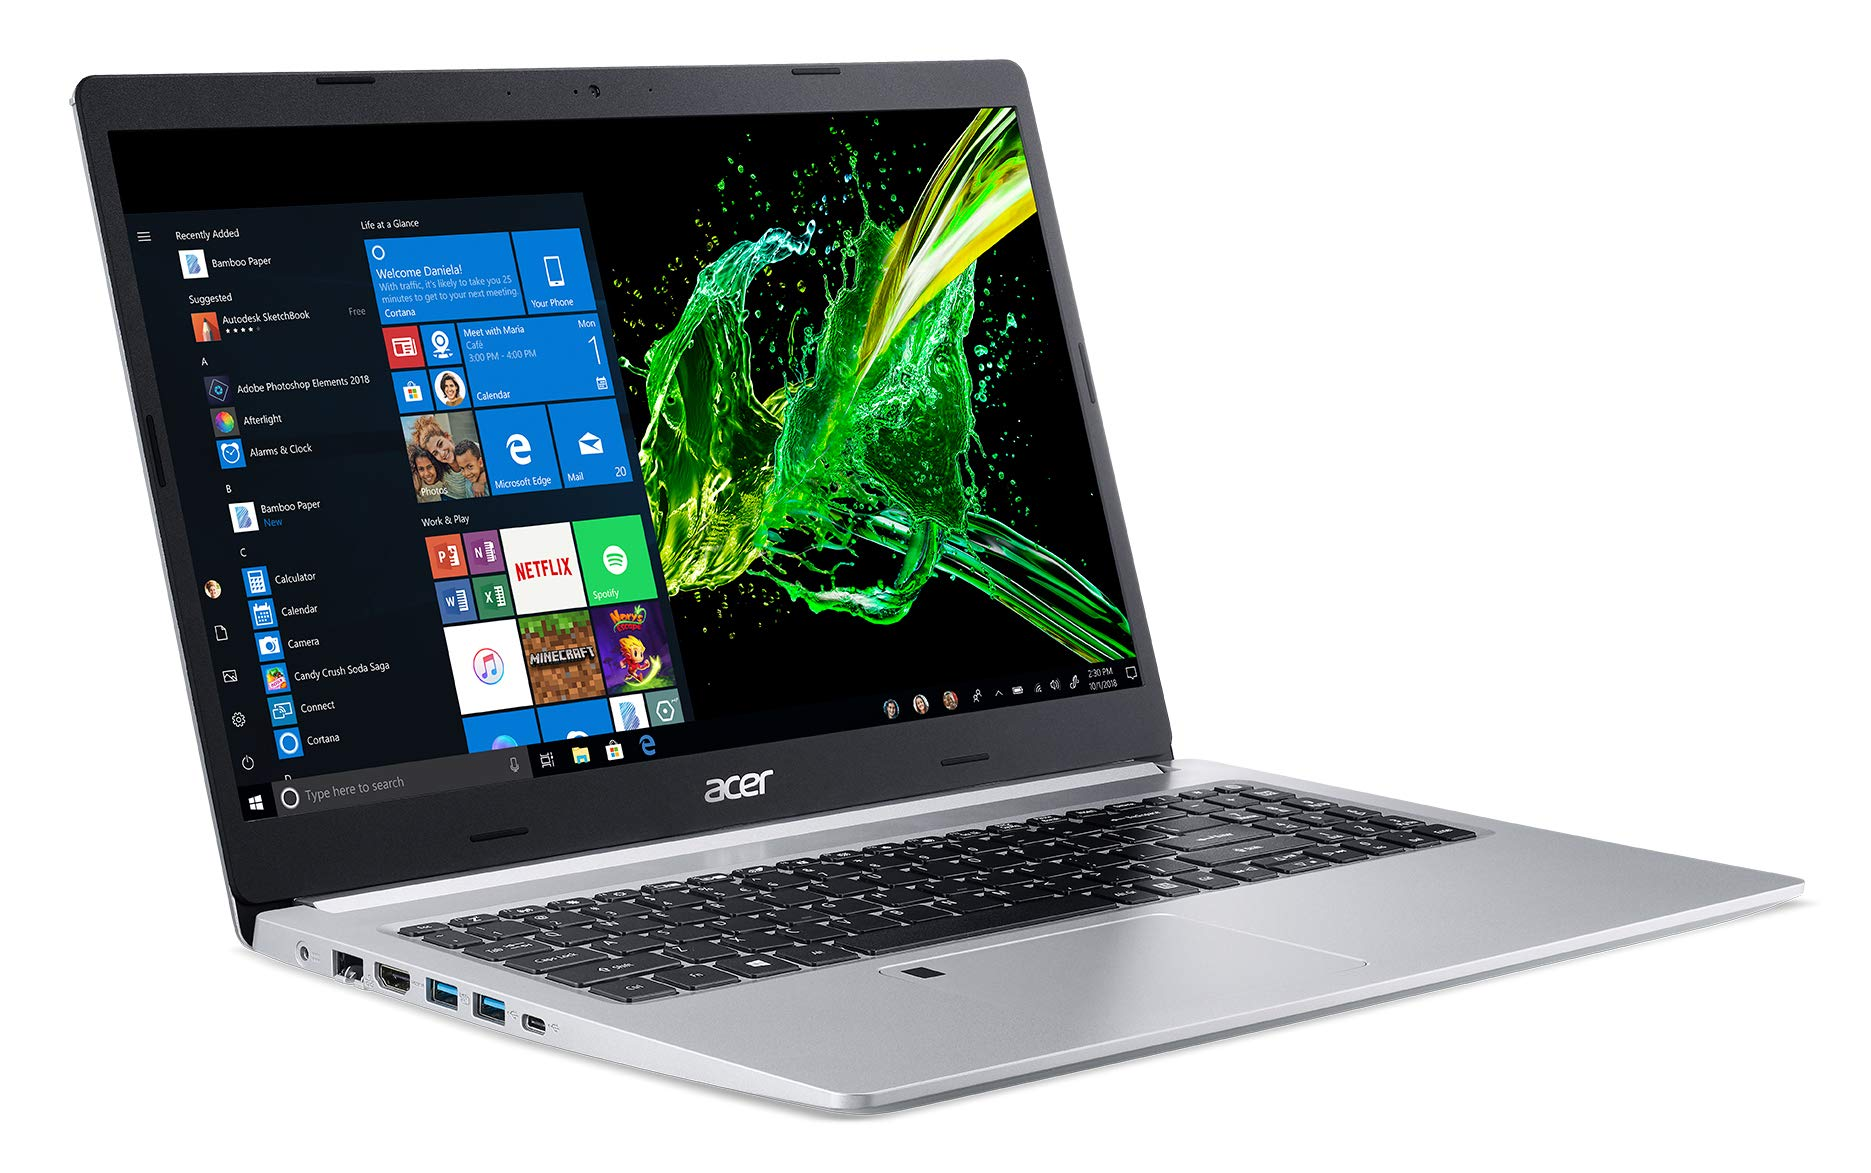 Acer Aspire 5 Slim Laptop, 15.6'' Full HD IPS Display, 8th Gen Intel Core i5-8265U, 8GB DDR4, 256GB PCIe NVMe SSD, Backlit Keyboard, Fingerprint Reader, Windows 10 Home, A515-54-51DJ by Acer (Image #1)